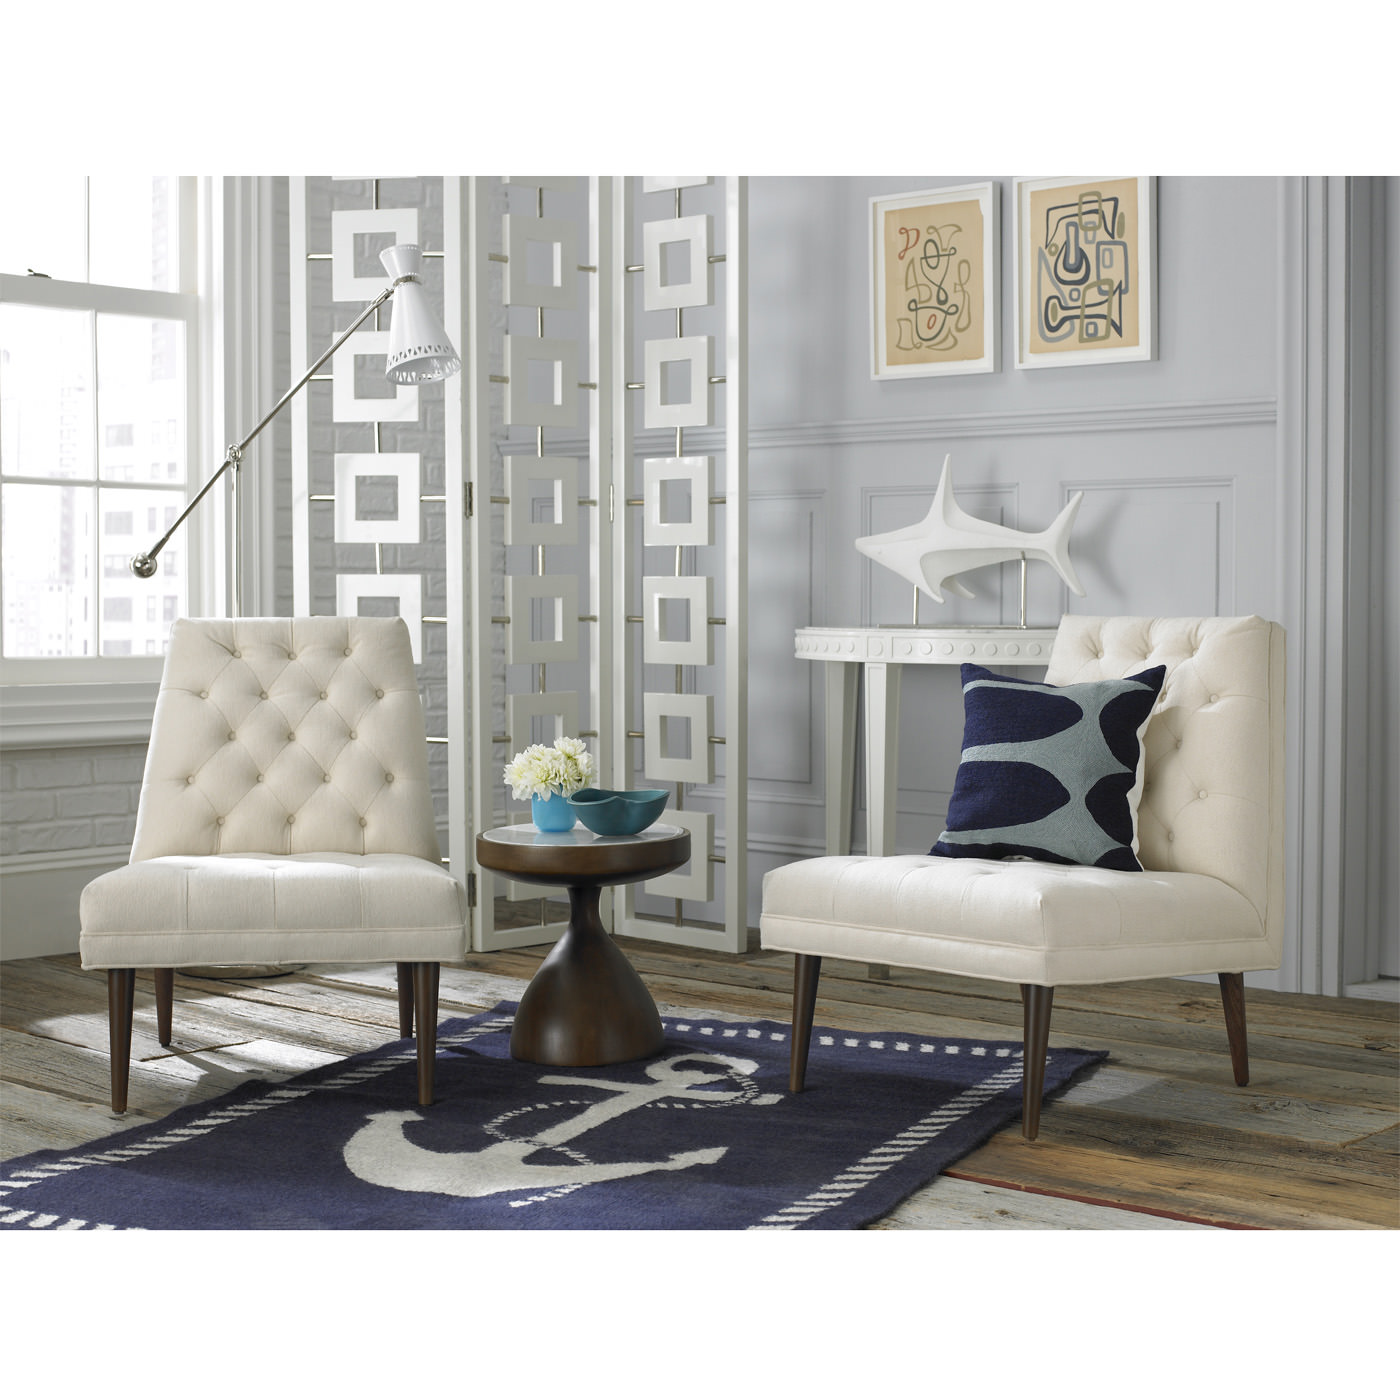 Jonathan Adler jonathan adler Jonathan Adler: A Flawless Rug Collection Jonathan Adler A Flawles Rug Collection 1